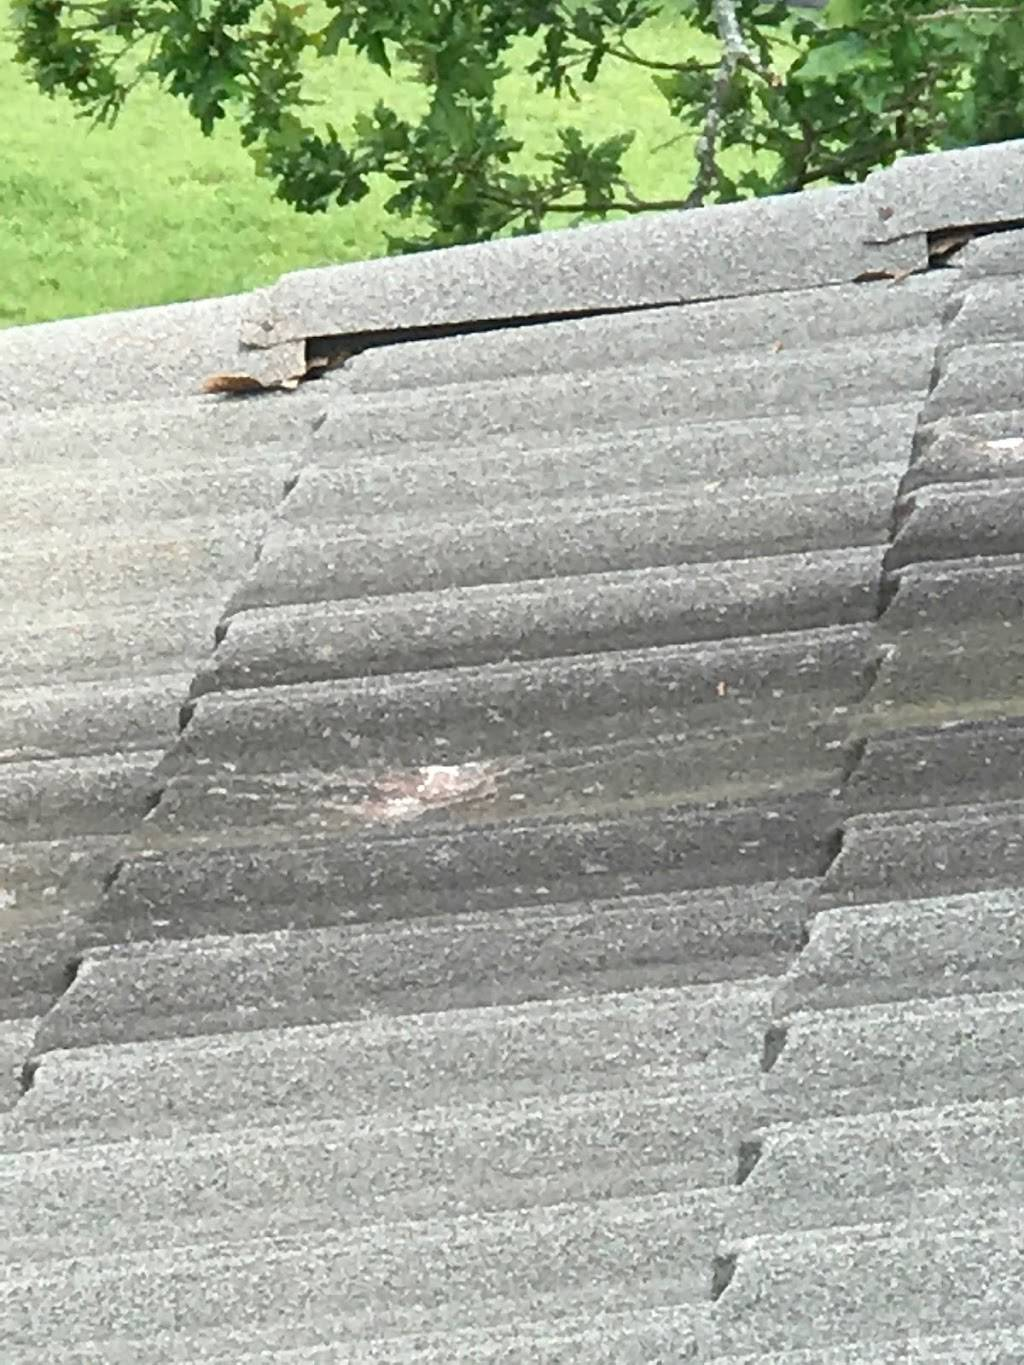 Fireman Roofing - roofing contractor  | Photo 4 of 9 | Address: 6707 Landover Hills Ln, Arlington, TX 76017, USA | Phone: (817) 455-5618